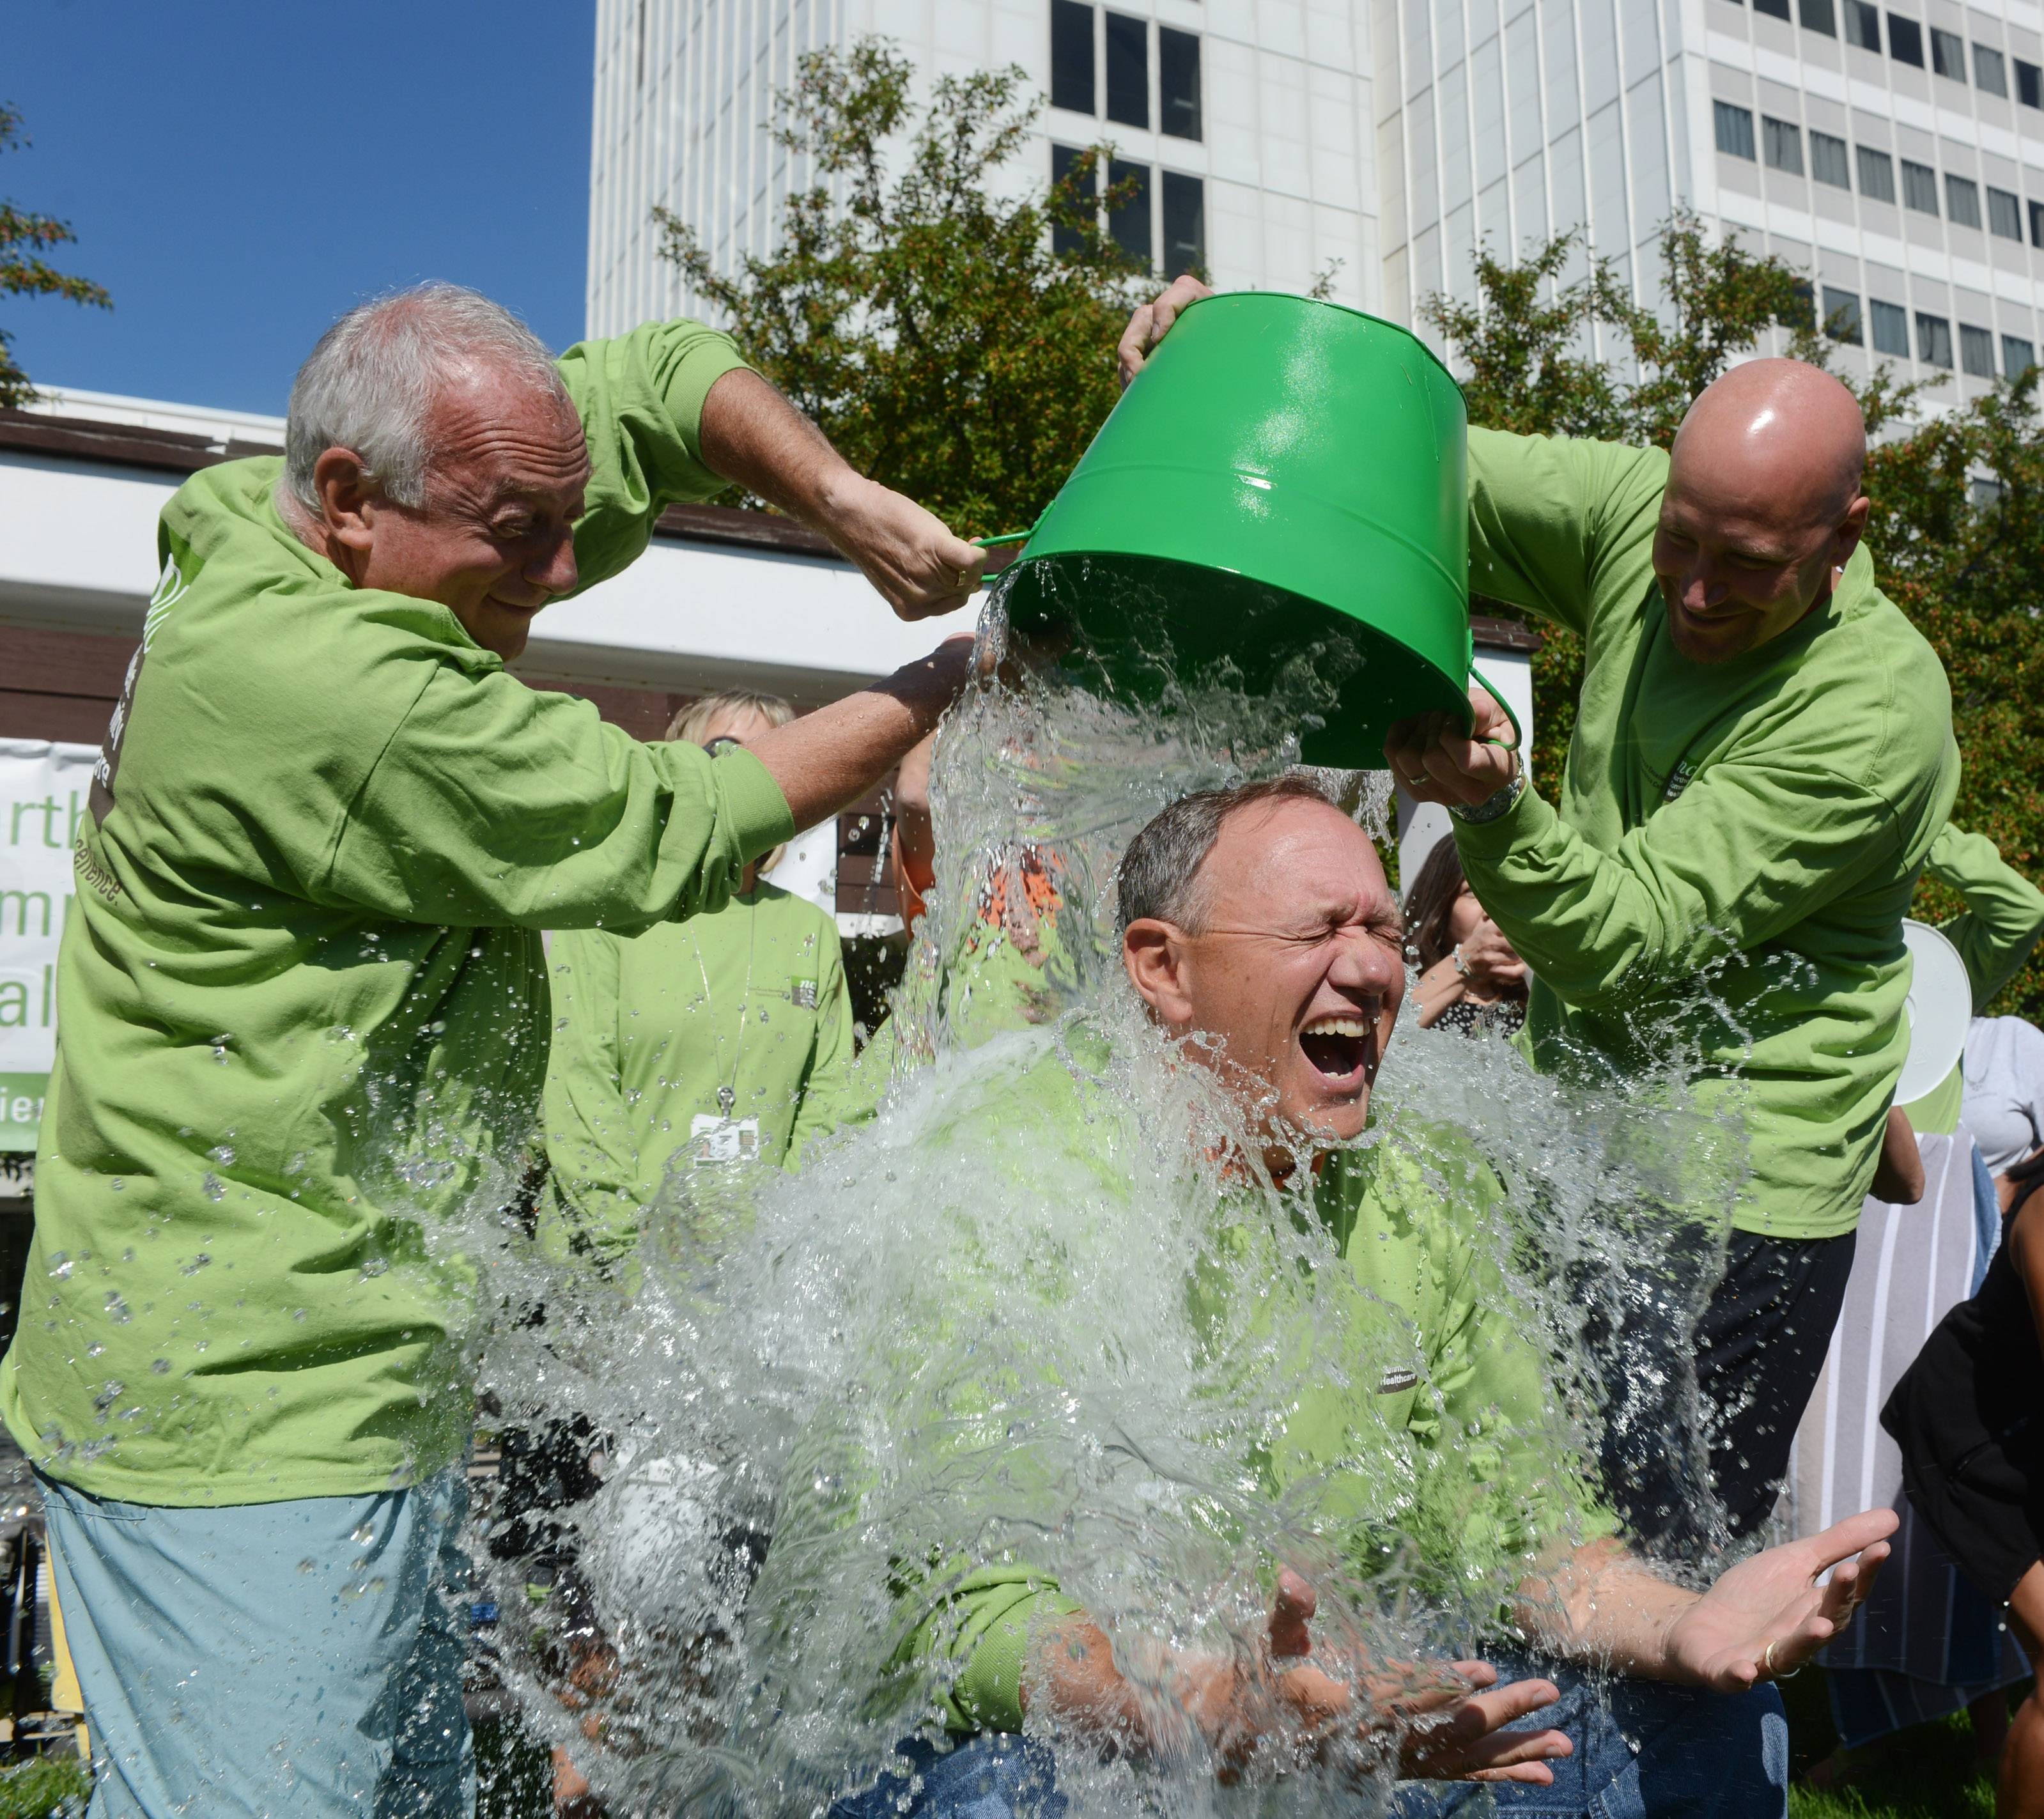 Northwest Community Hospital CEO Stephen Scogna gets doused by Dr. Alan Loren and Chief Operating Officer Michael Hartke, right.